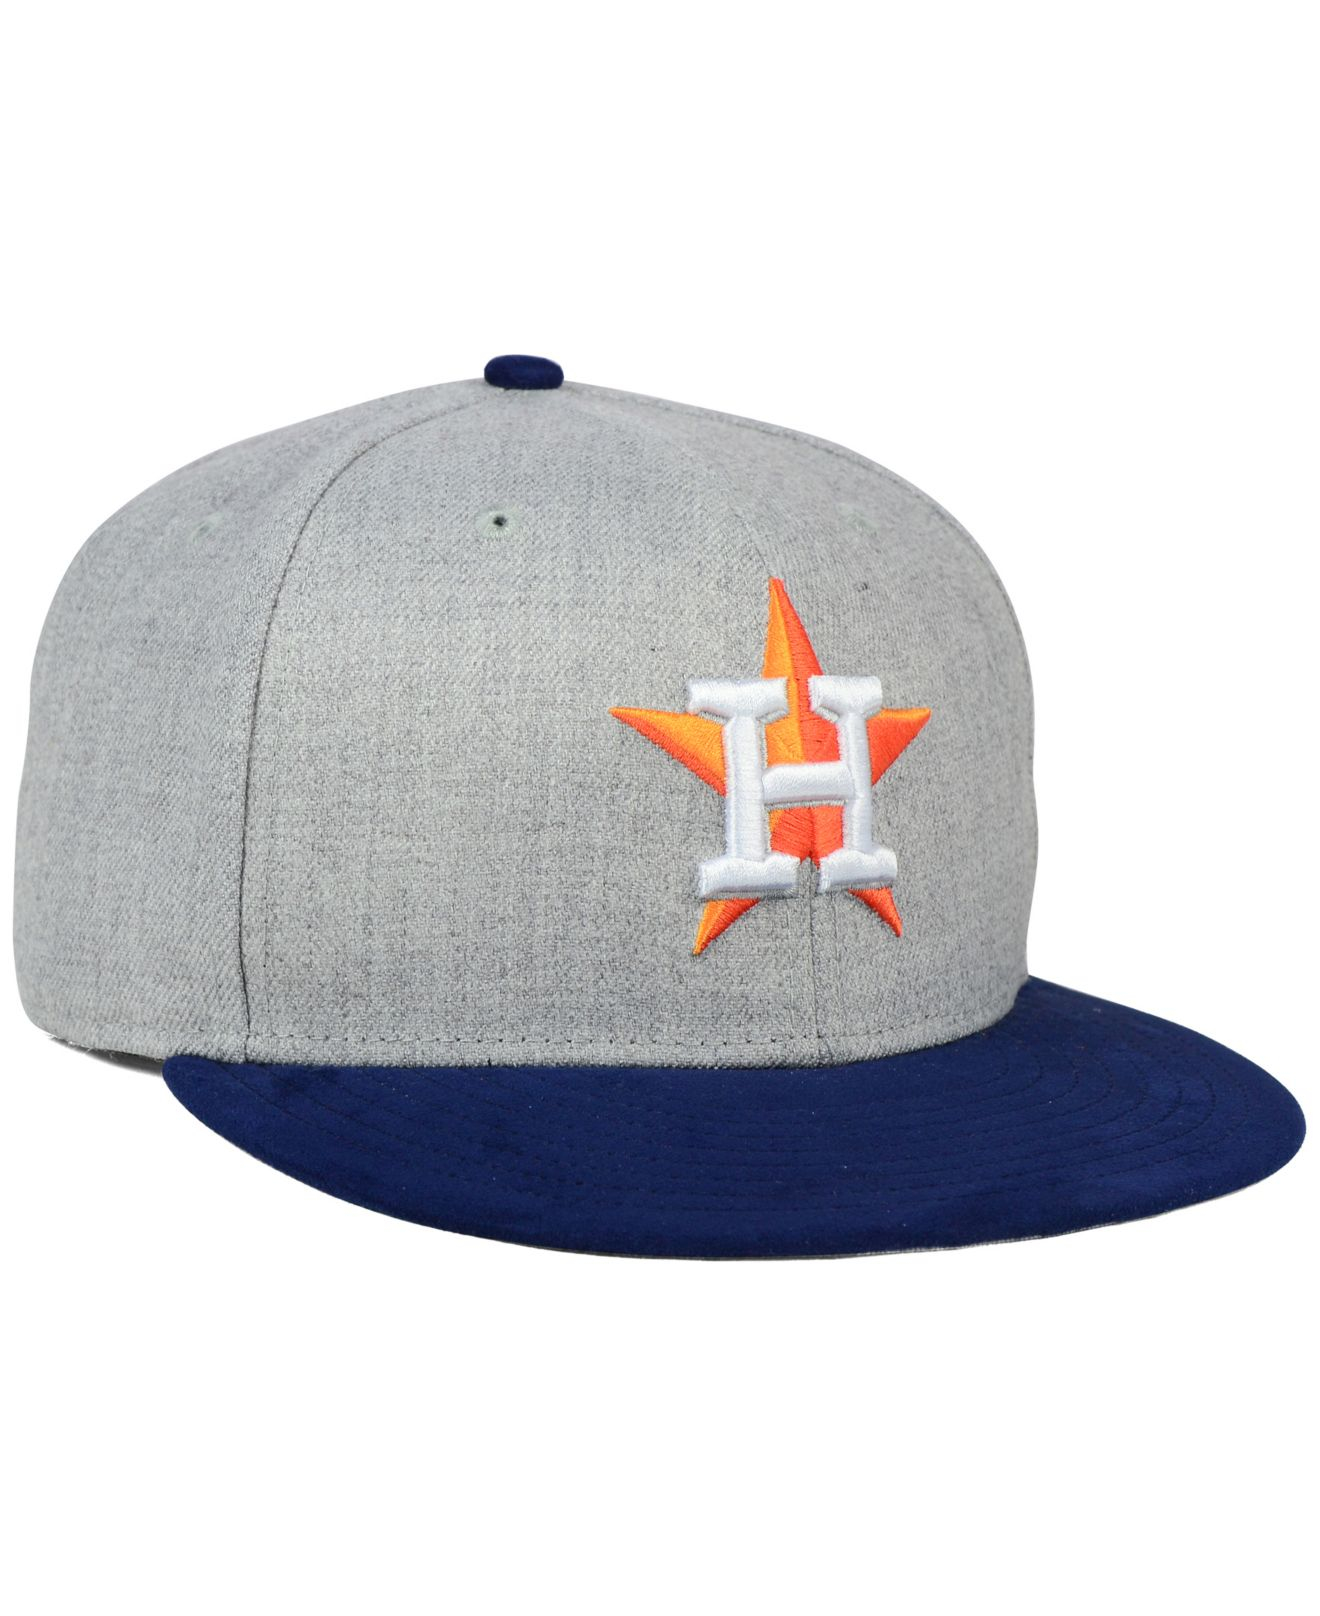 brand new f48b4 f5a1e KTZ Houston Astros Heather On Faux-suede 9fifty Snapback Cap in Gray ...